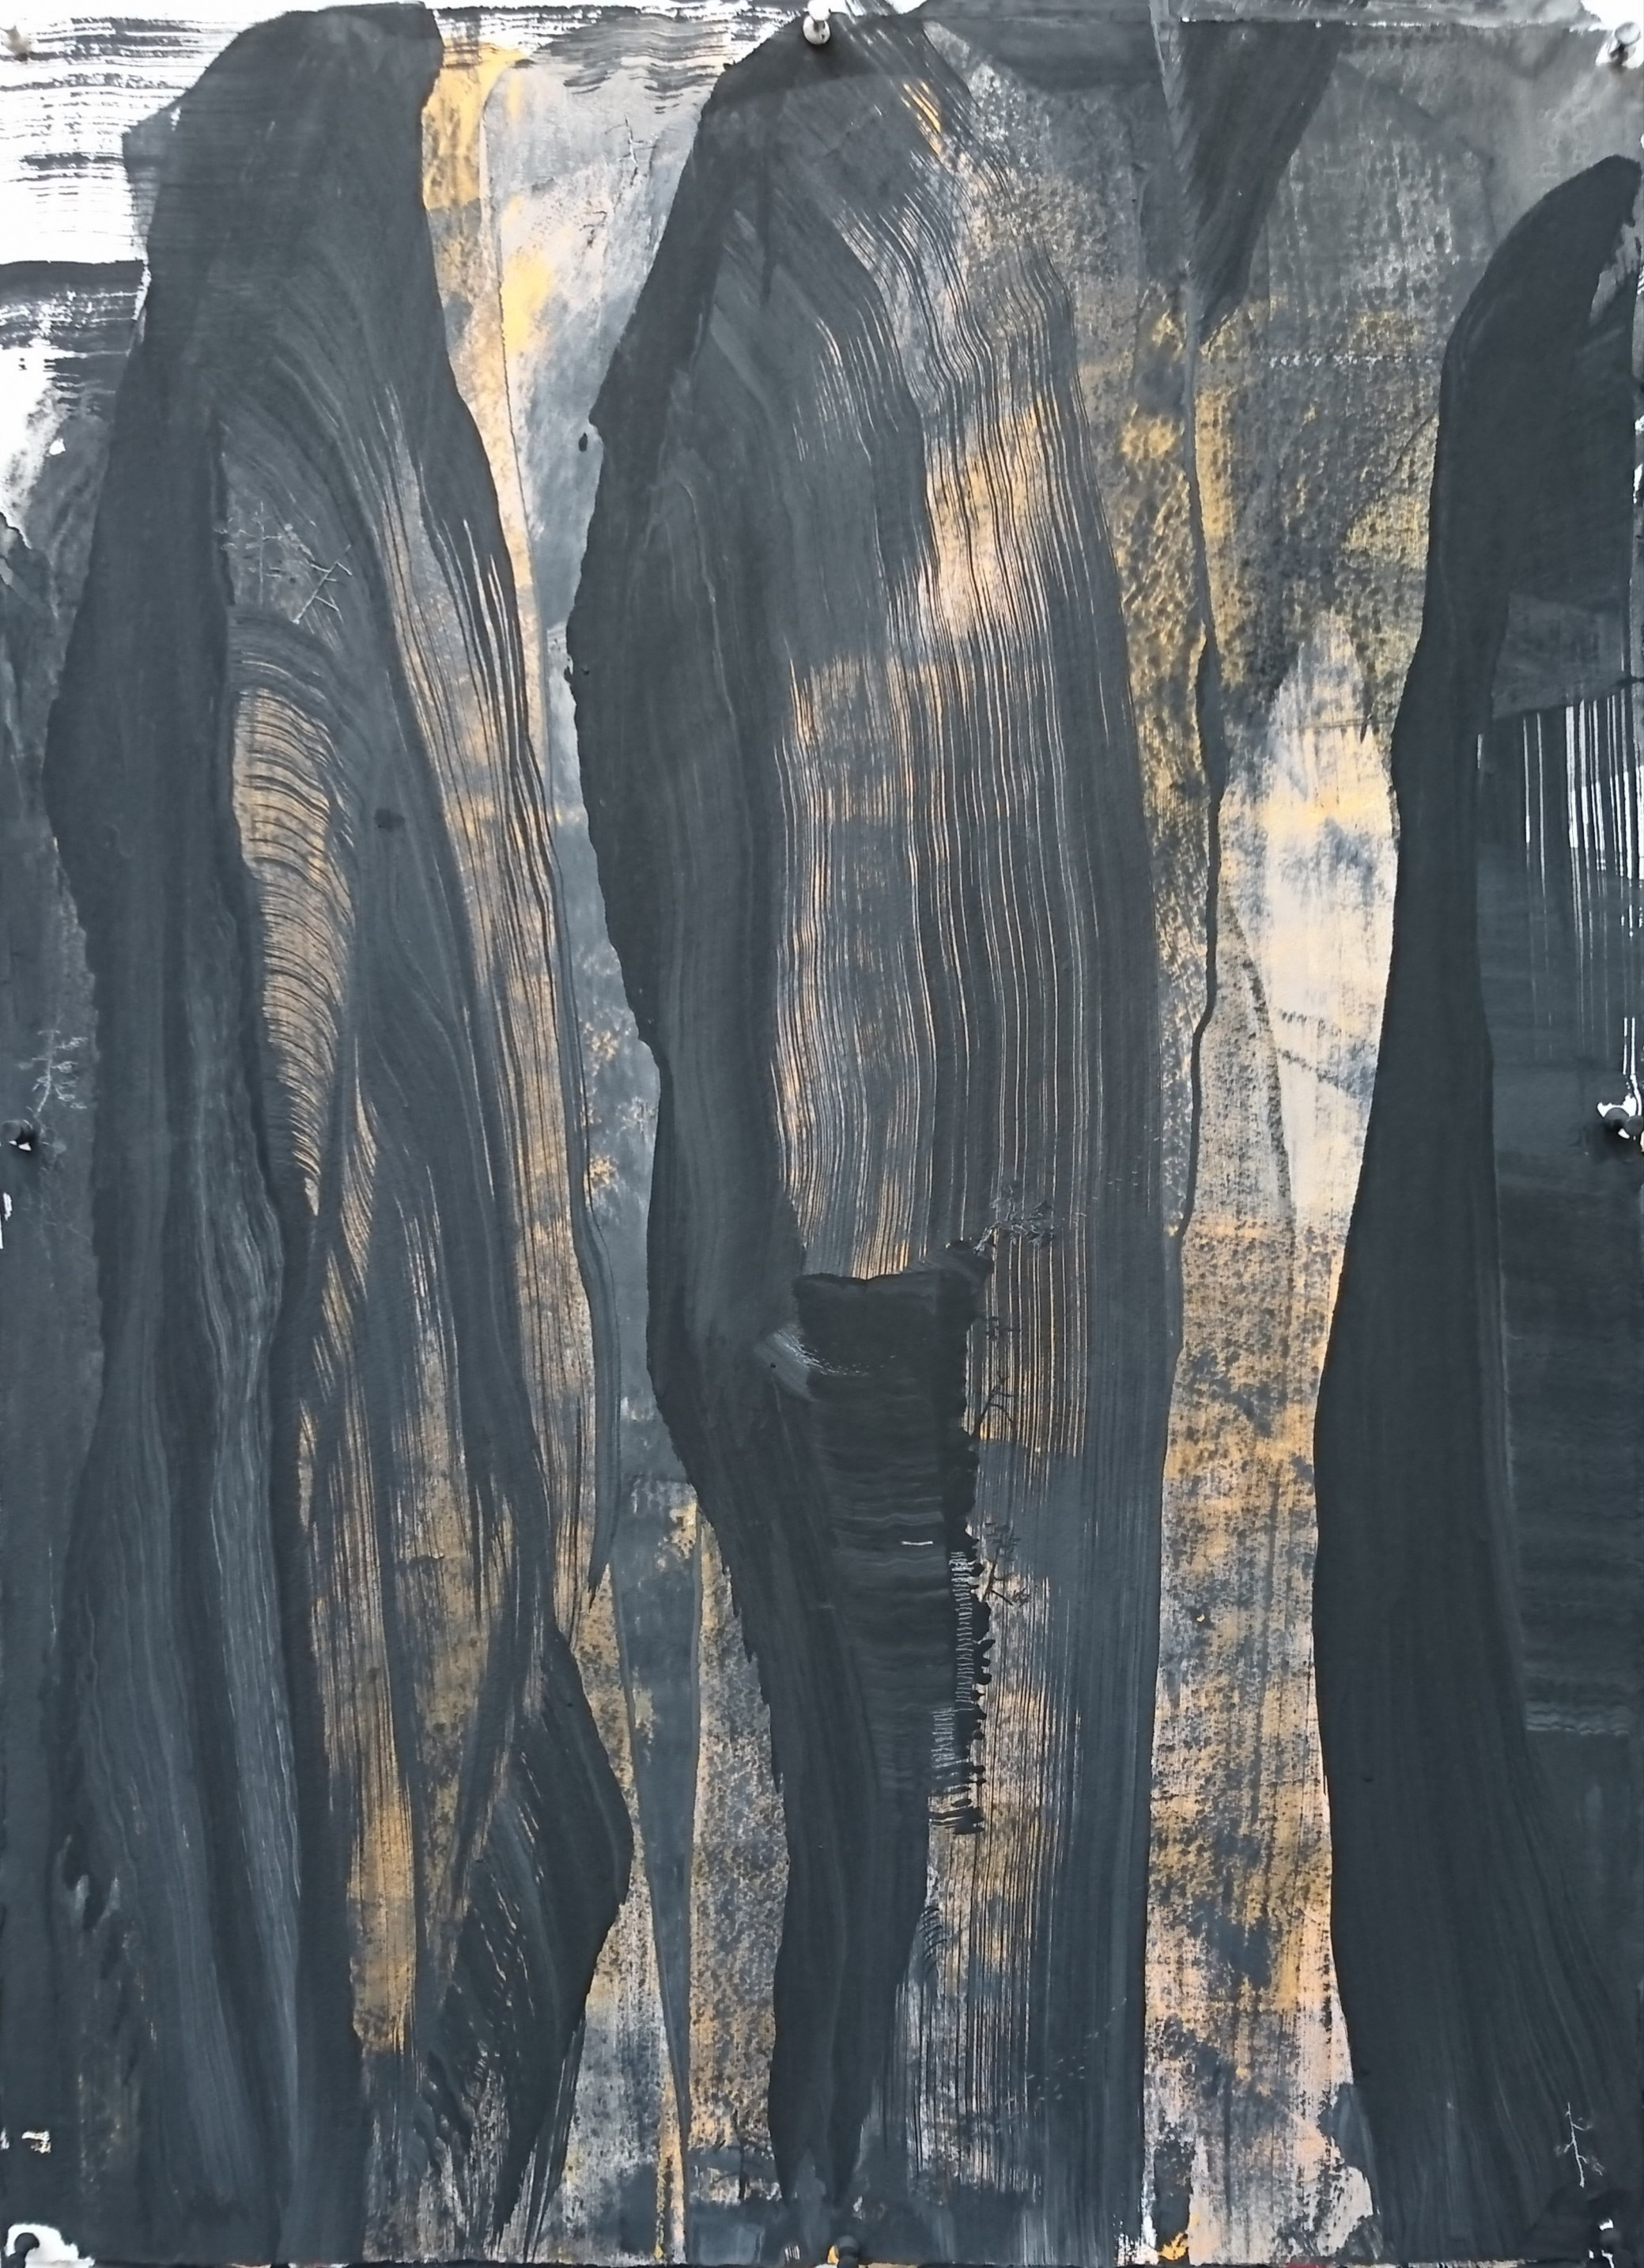 Angus Nivison_ Zahnjiajie Night - No Moon #1, Acrylic, Charcoal, Graphite and pigment on 640 gsm Arches, 78 x 58 cm.JPG